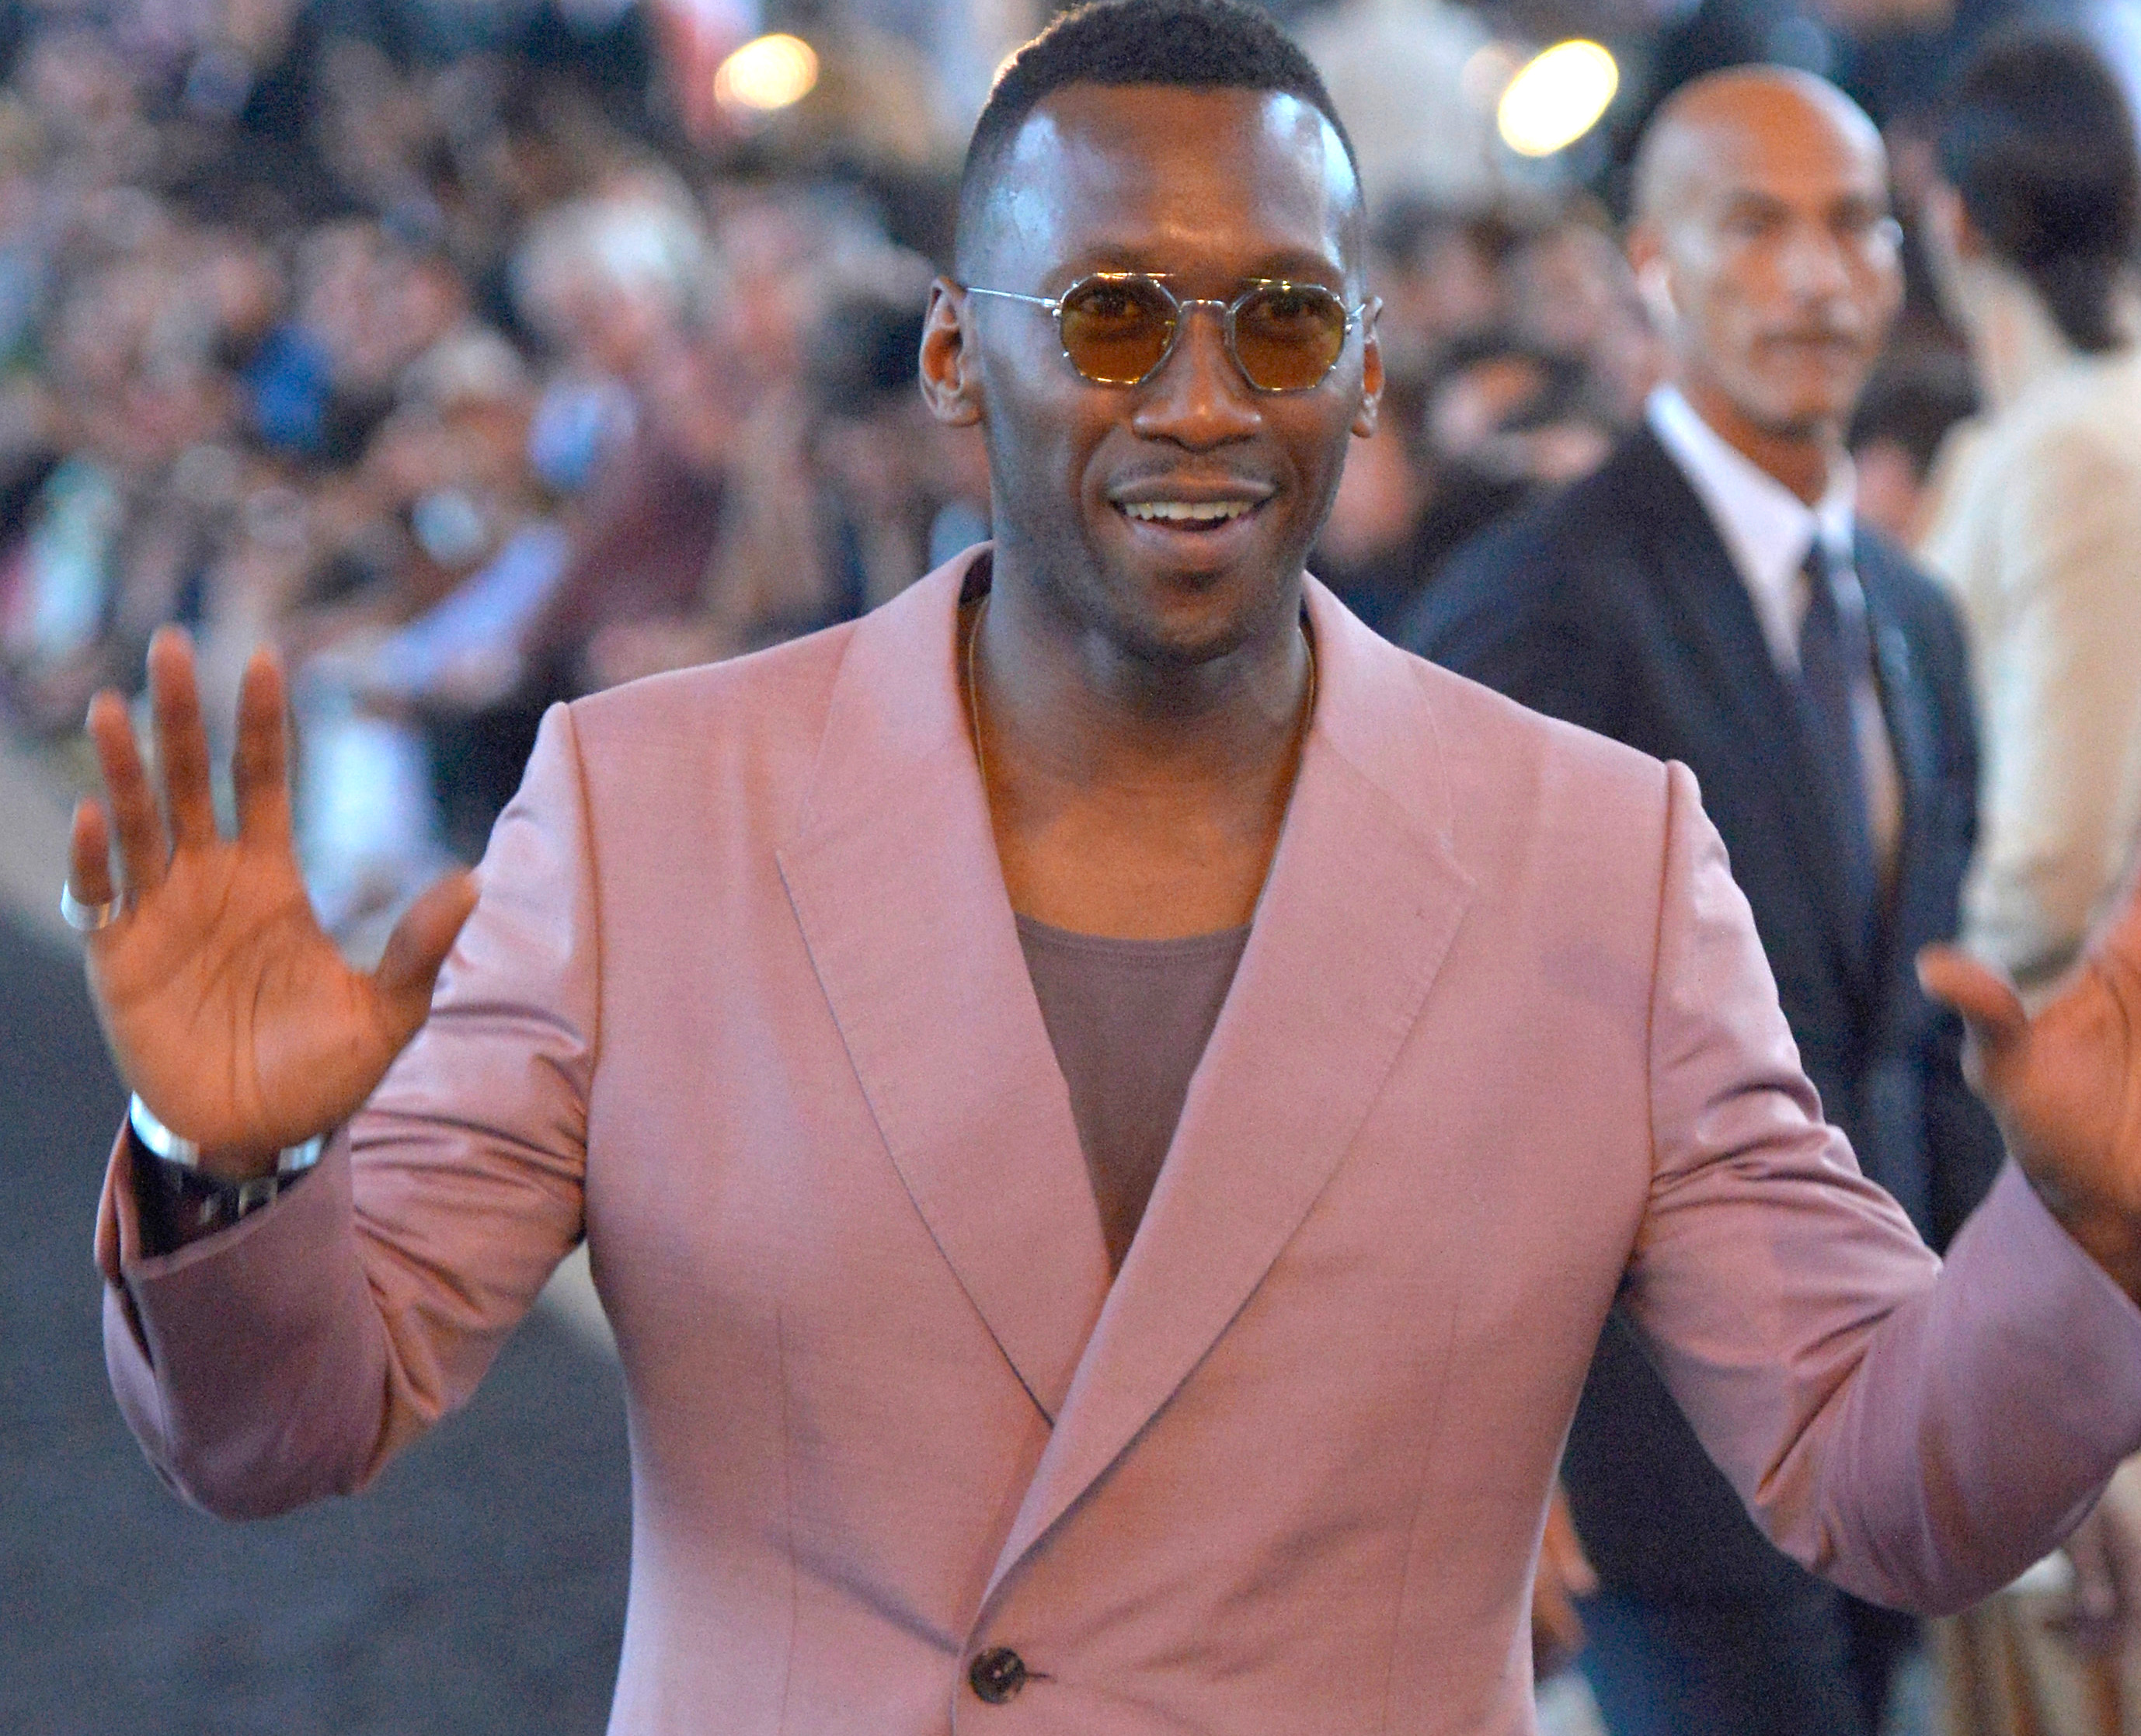 Mahershala Ali Kevin Hart Top 50 Celebrities For Brand Endorsements